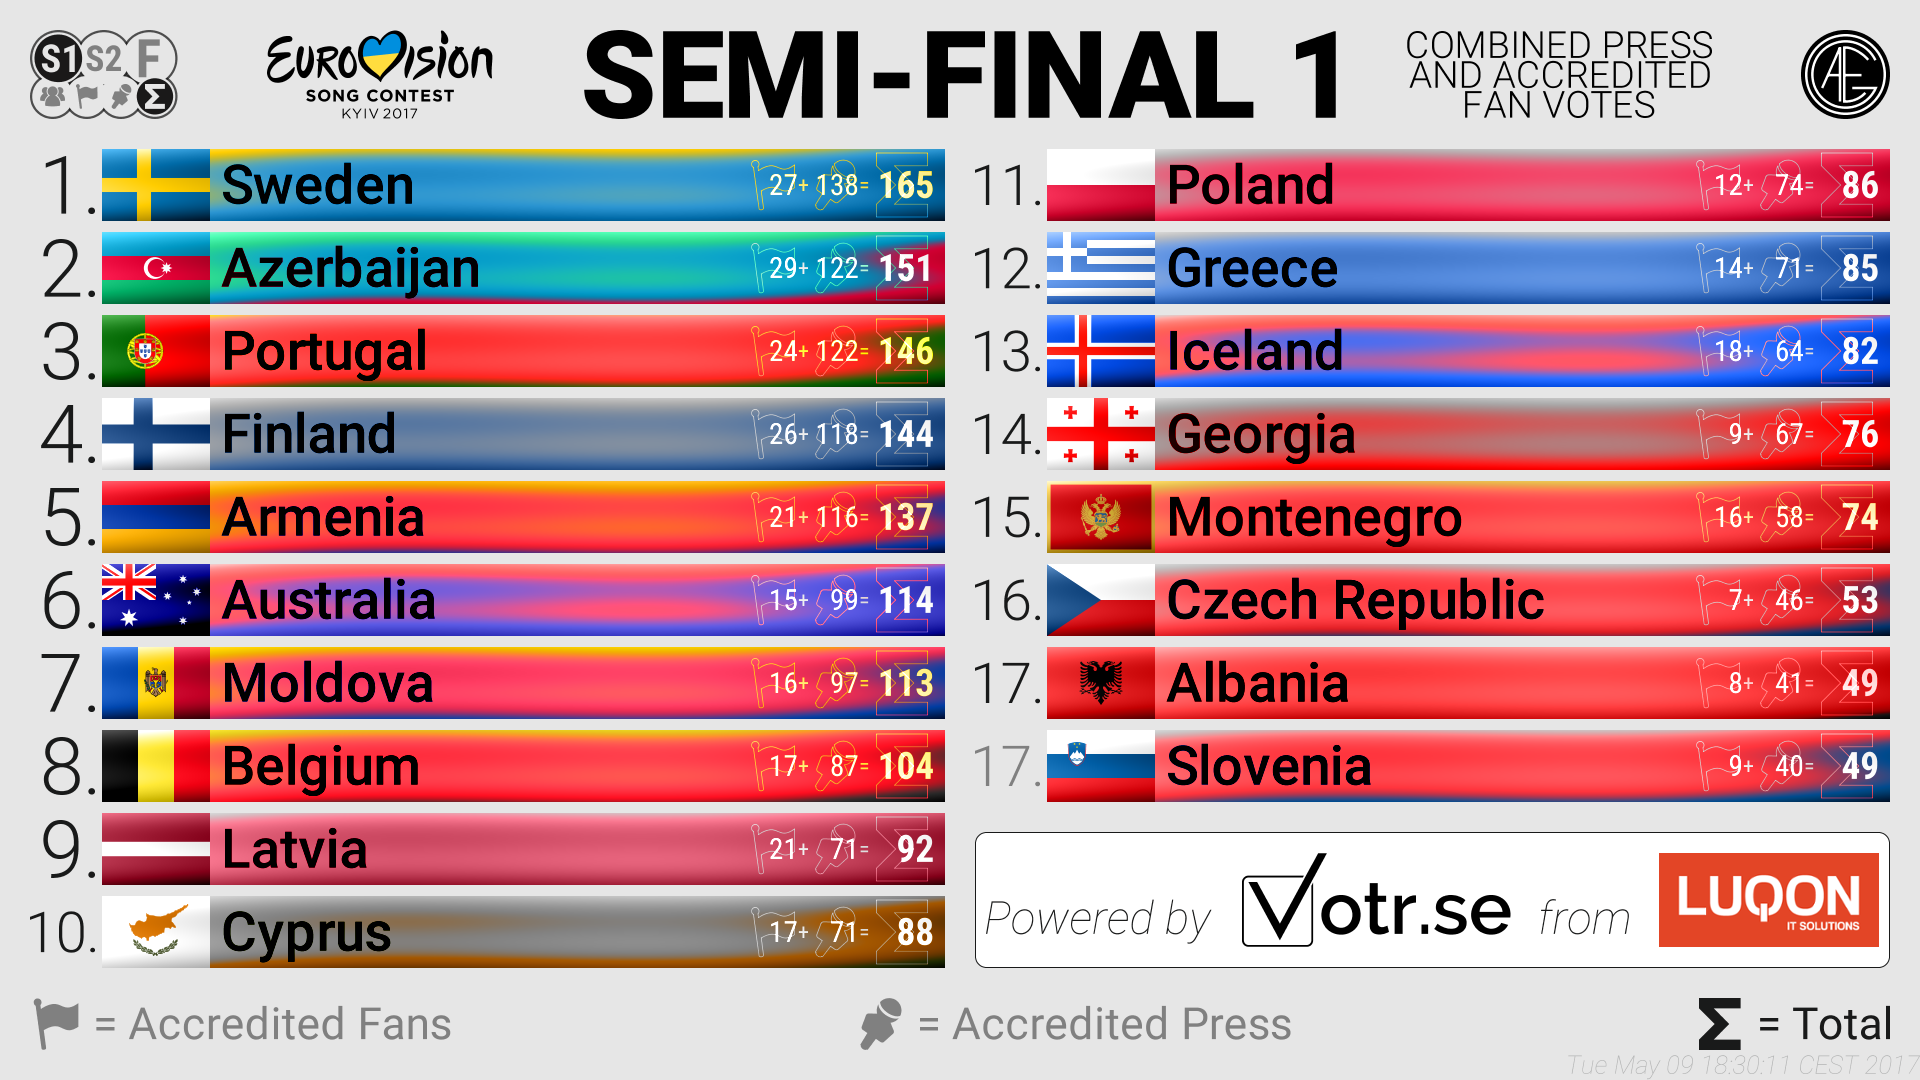 Eurovsion 2017: Press Poll results before First Semi Final